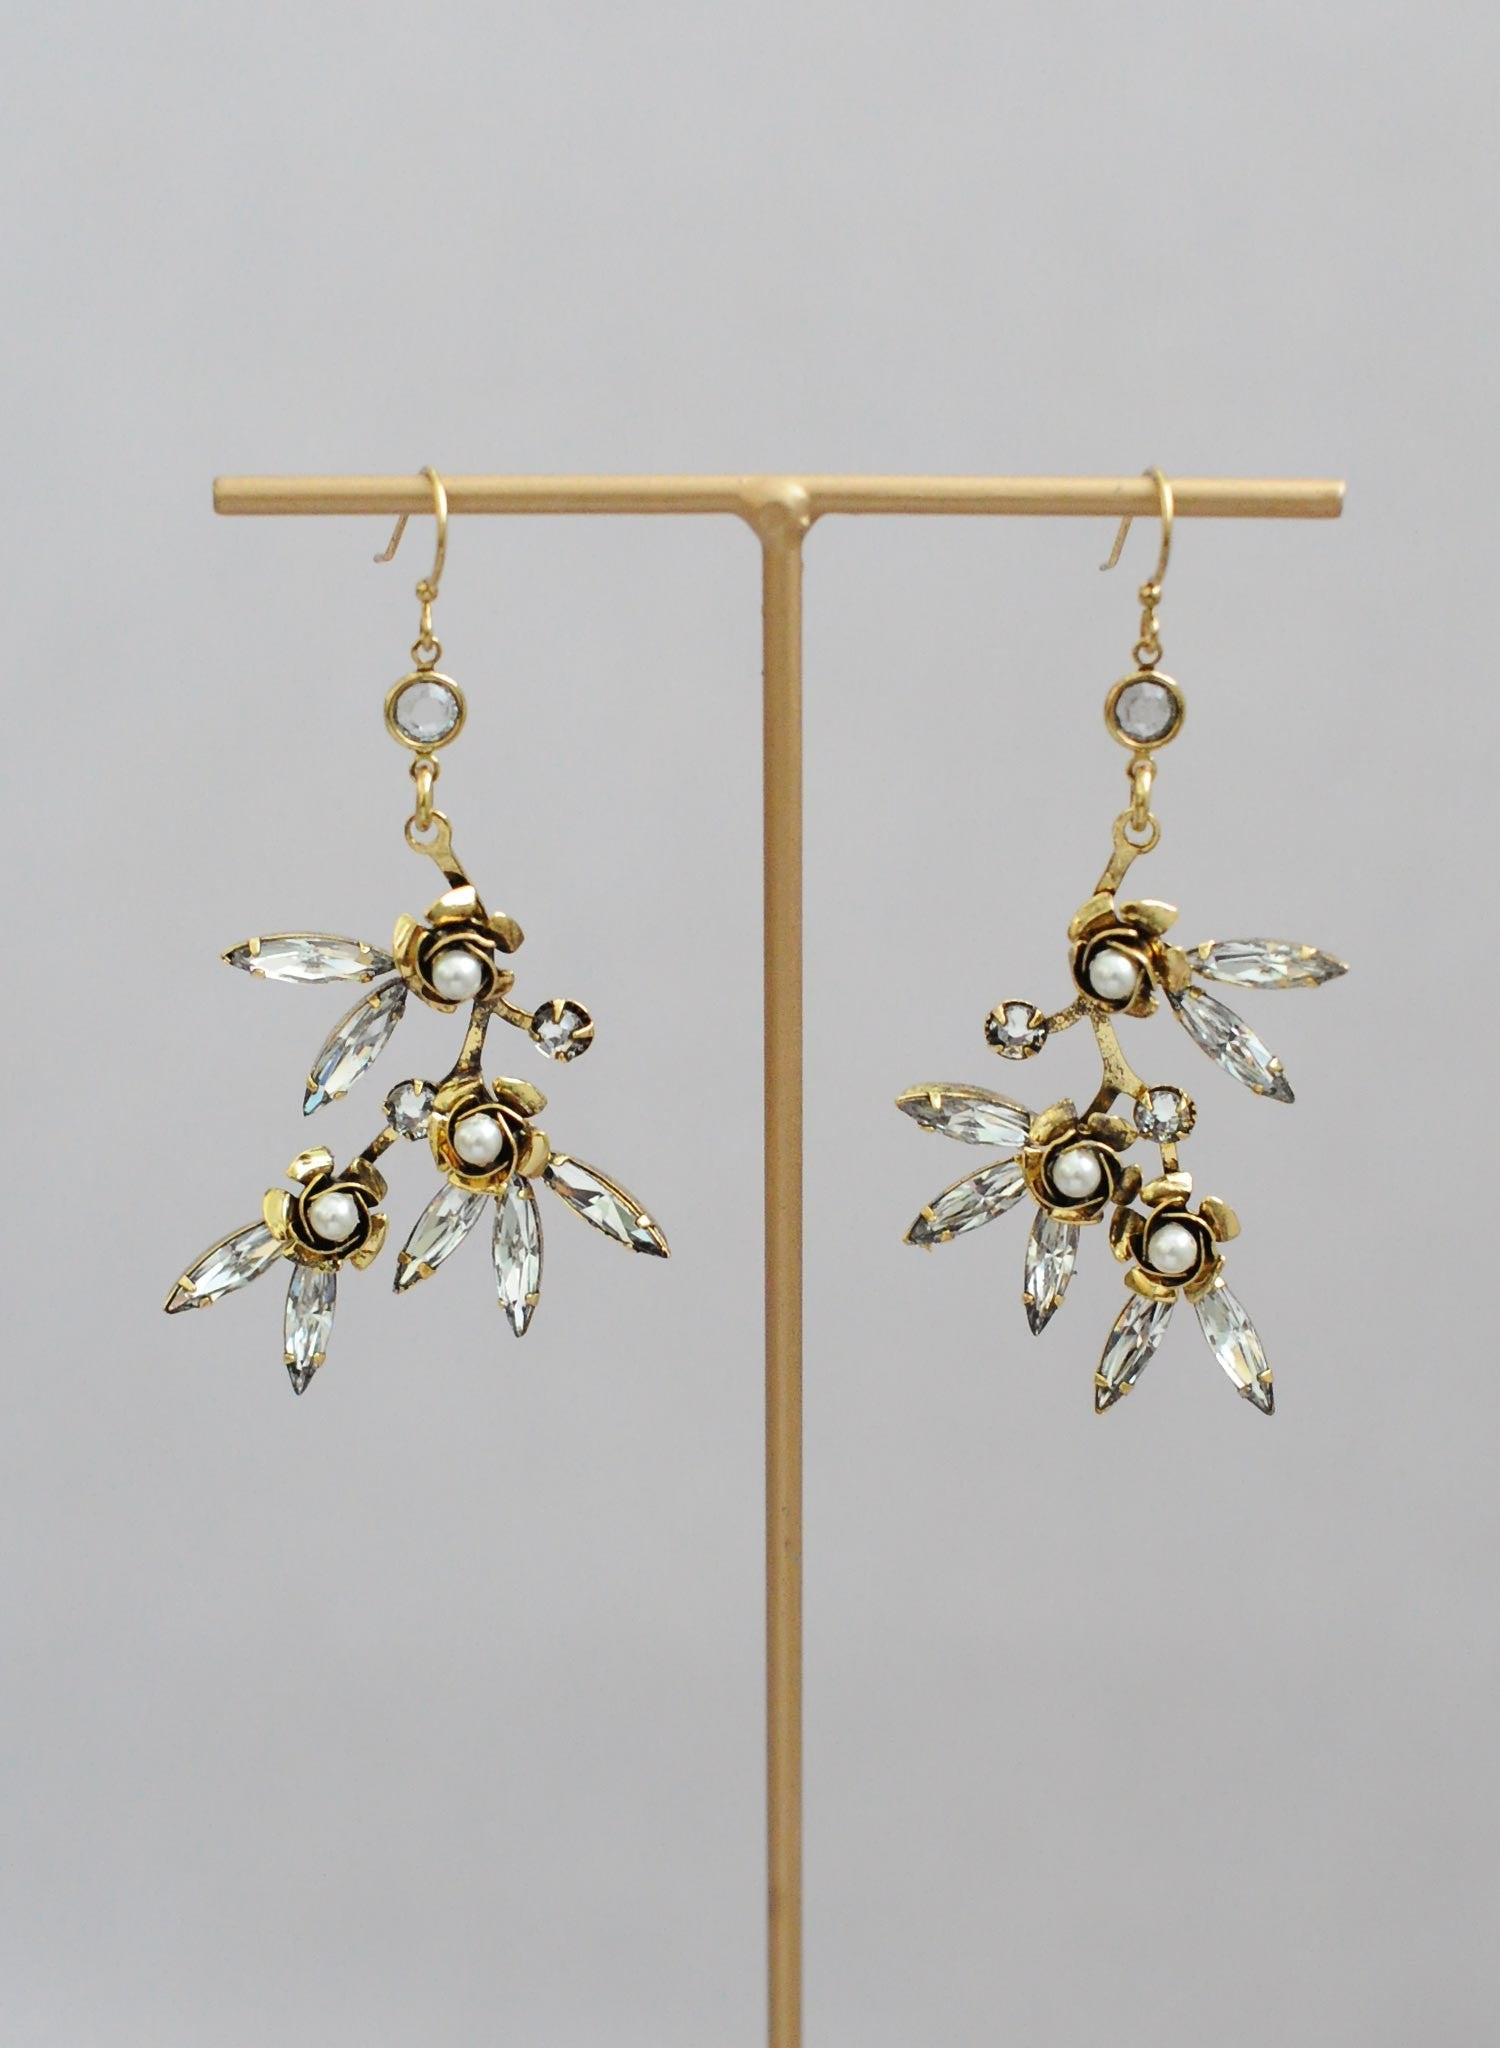 Rosette and crystal earrings - Style #630